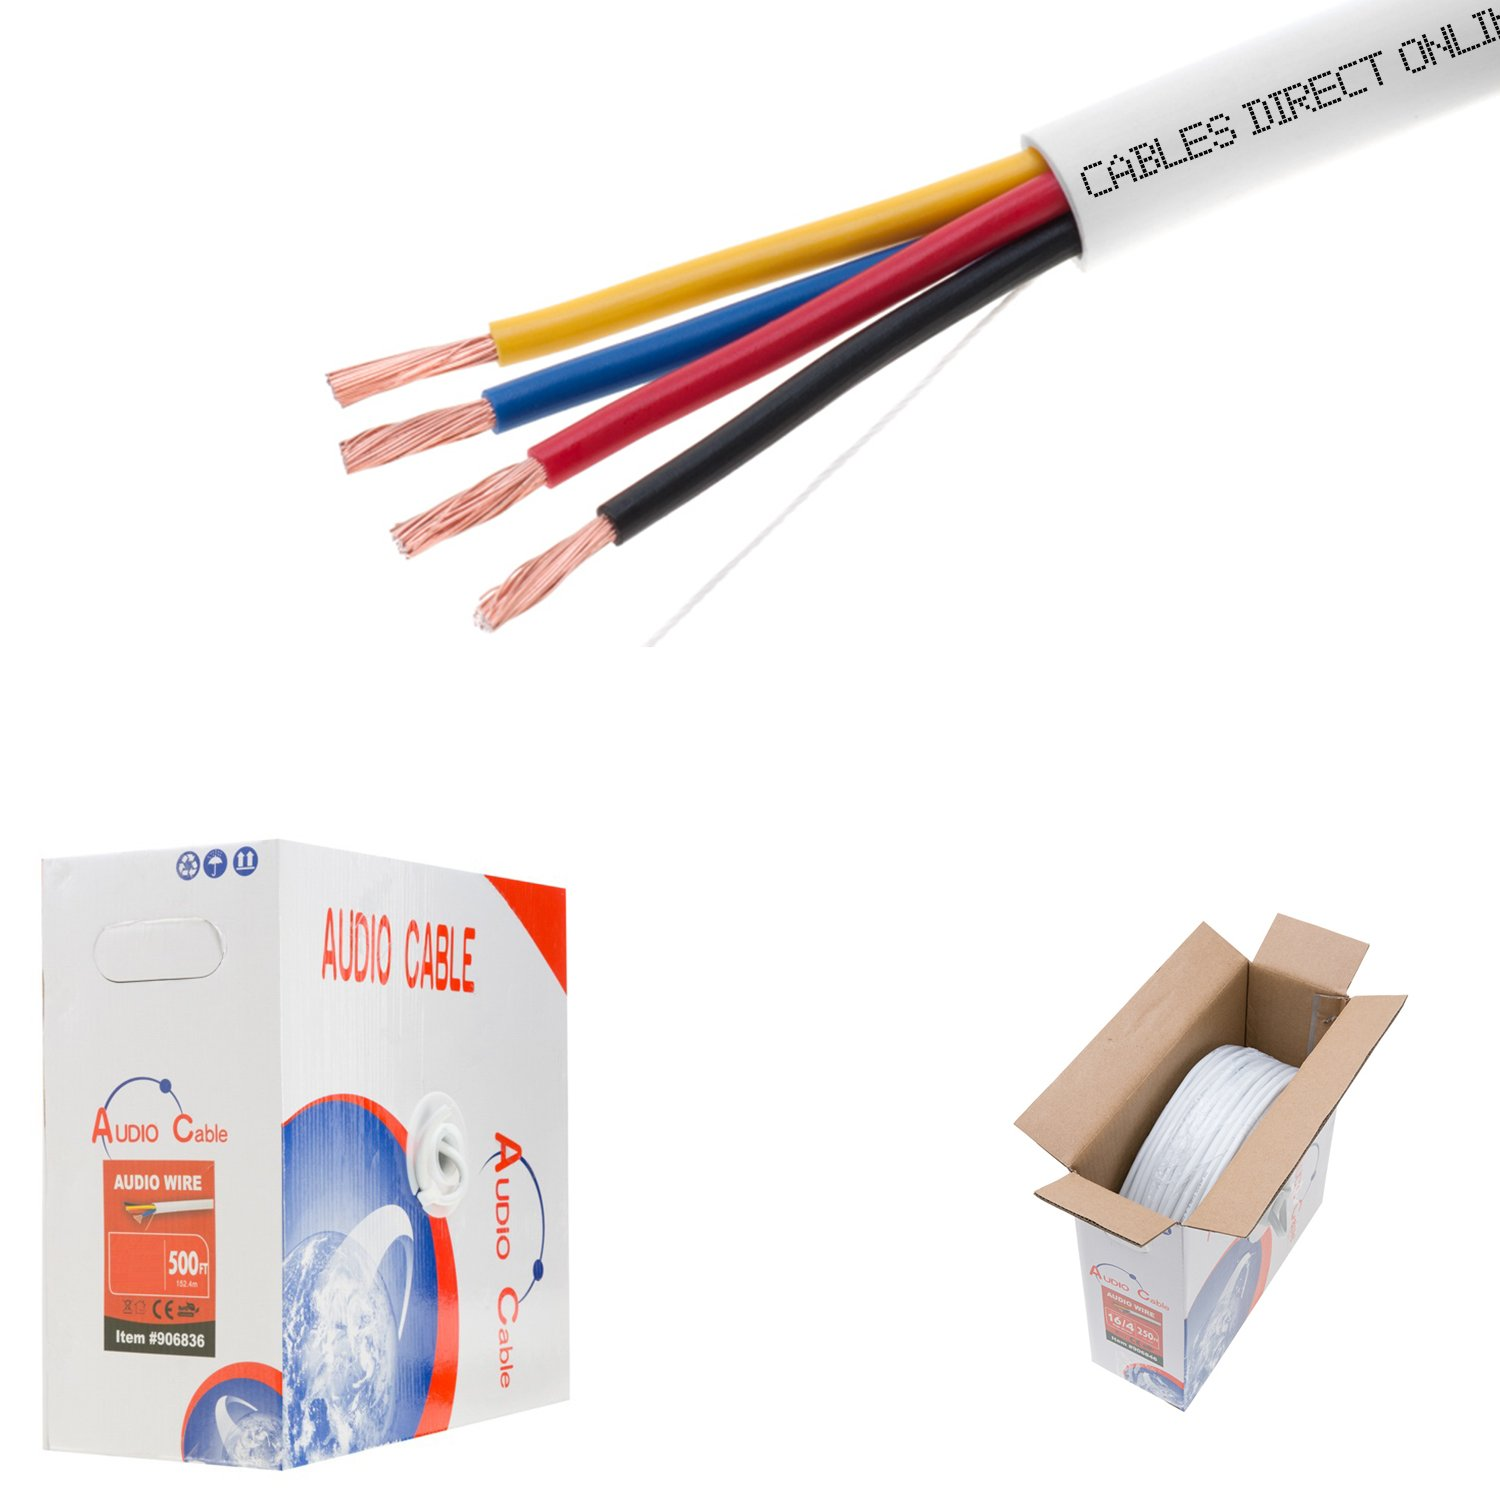 500ft 16awg 4 Conductors 16 Cl2 Rated Loud Speaker Motorcycle Audio Wiring Cable Wire Pull Box For In Wall Installation